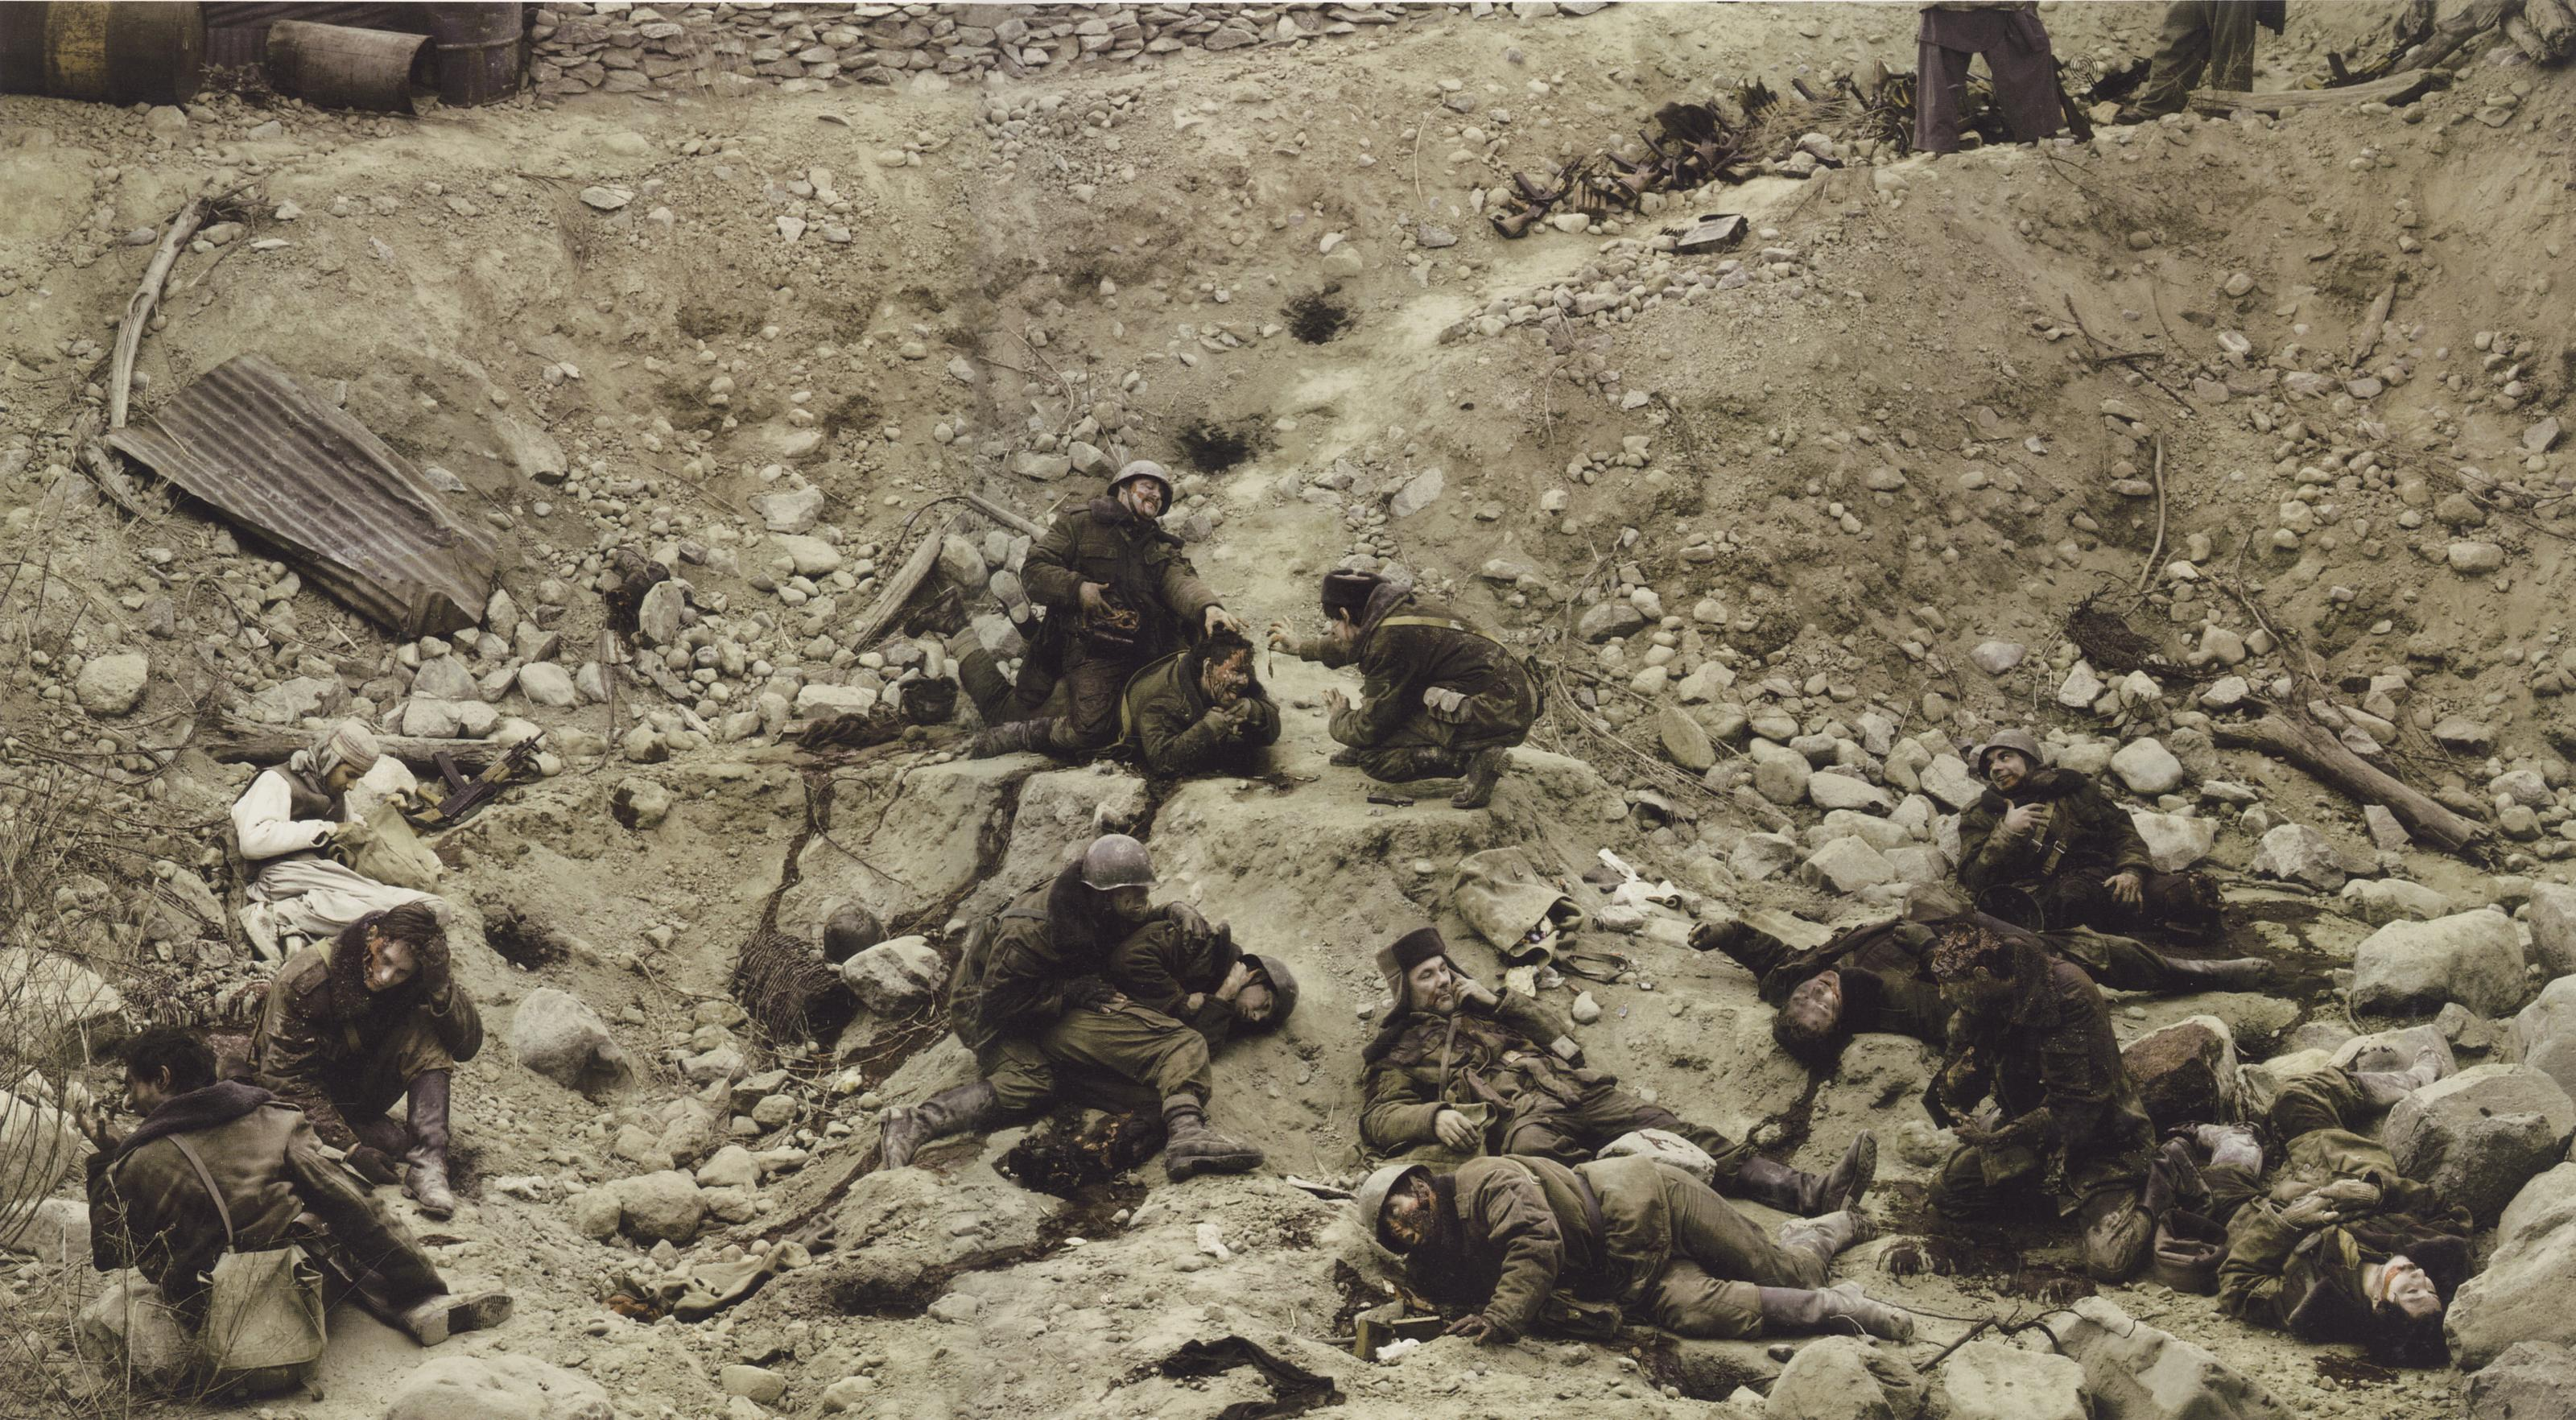 Dead Troops Talk (A vision after an ambush of a Red Army patrol, near Moqor, Afghanistan, winter 1986)